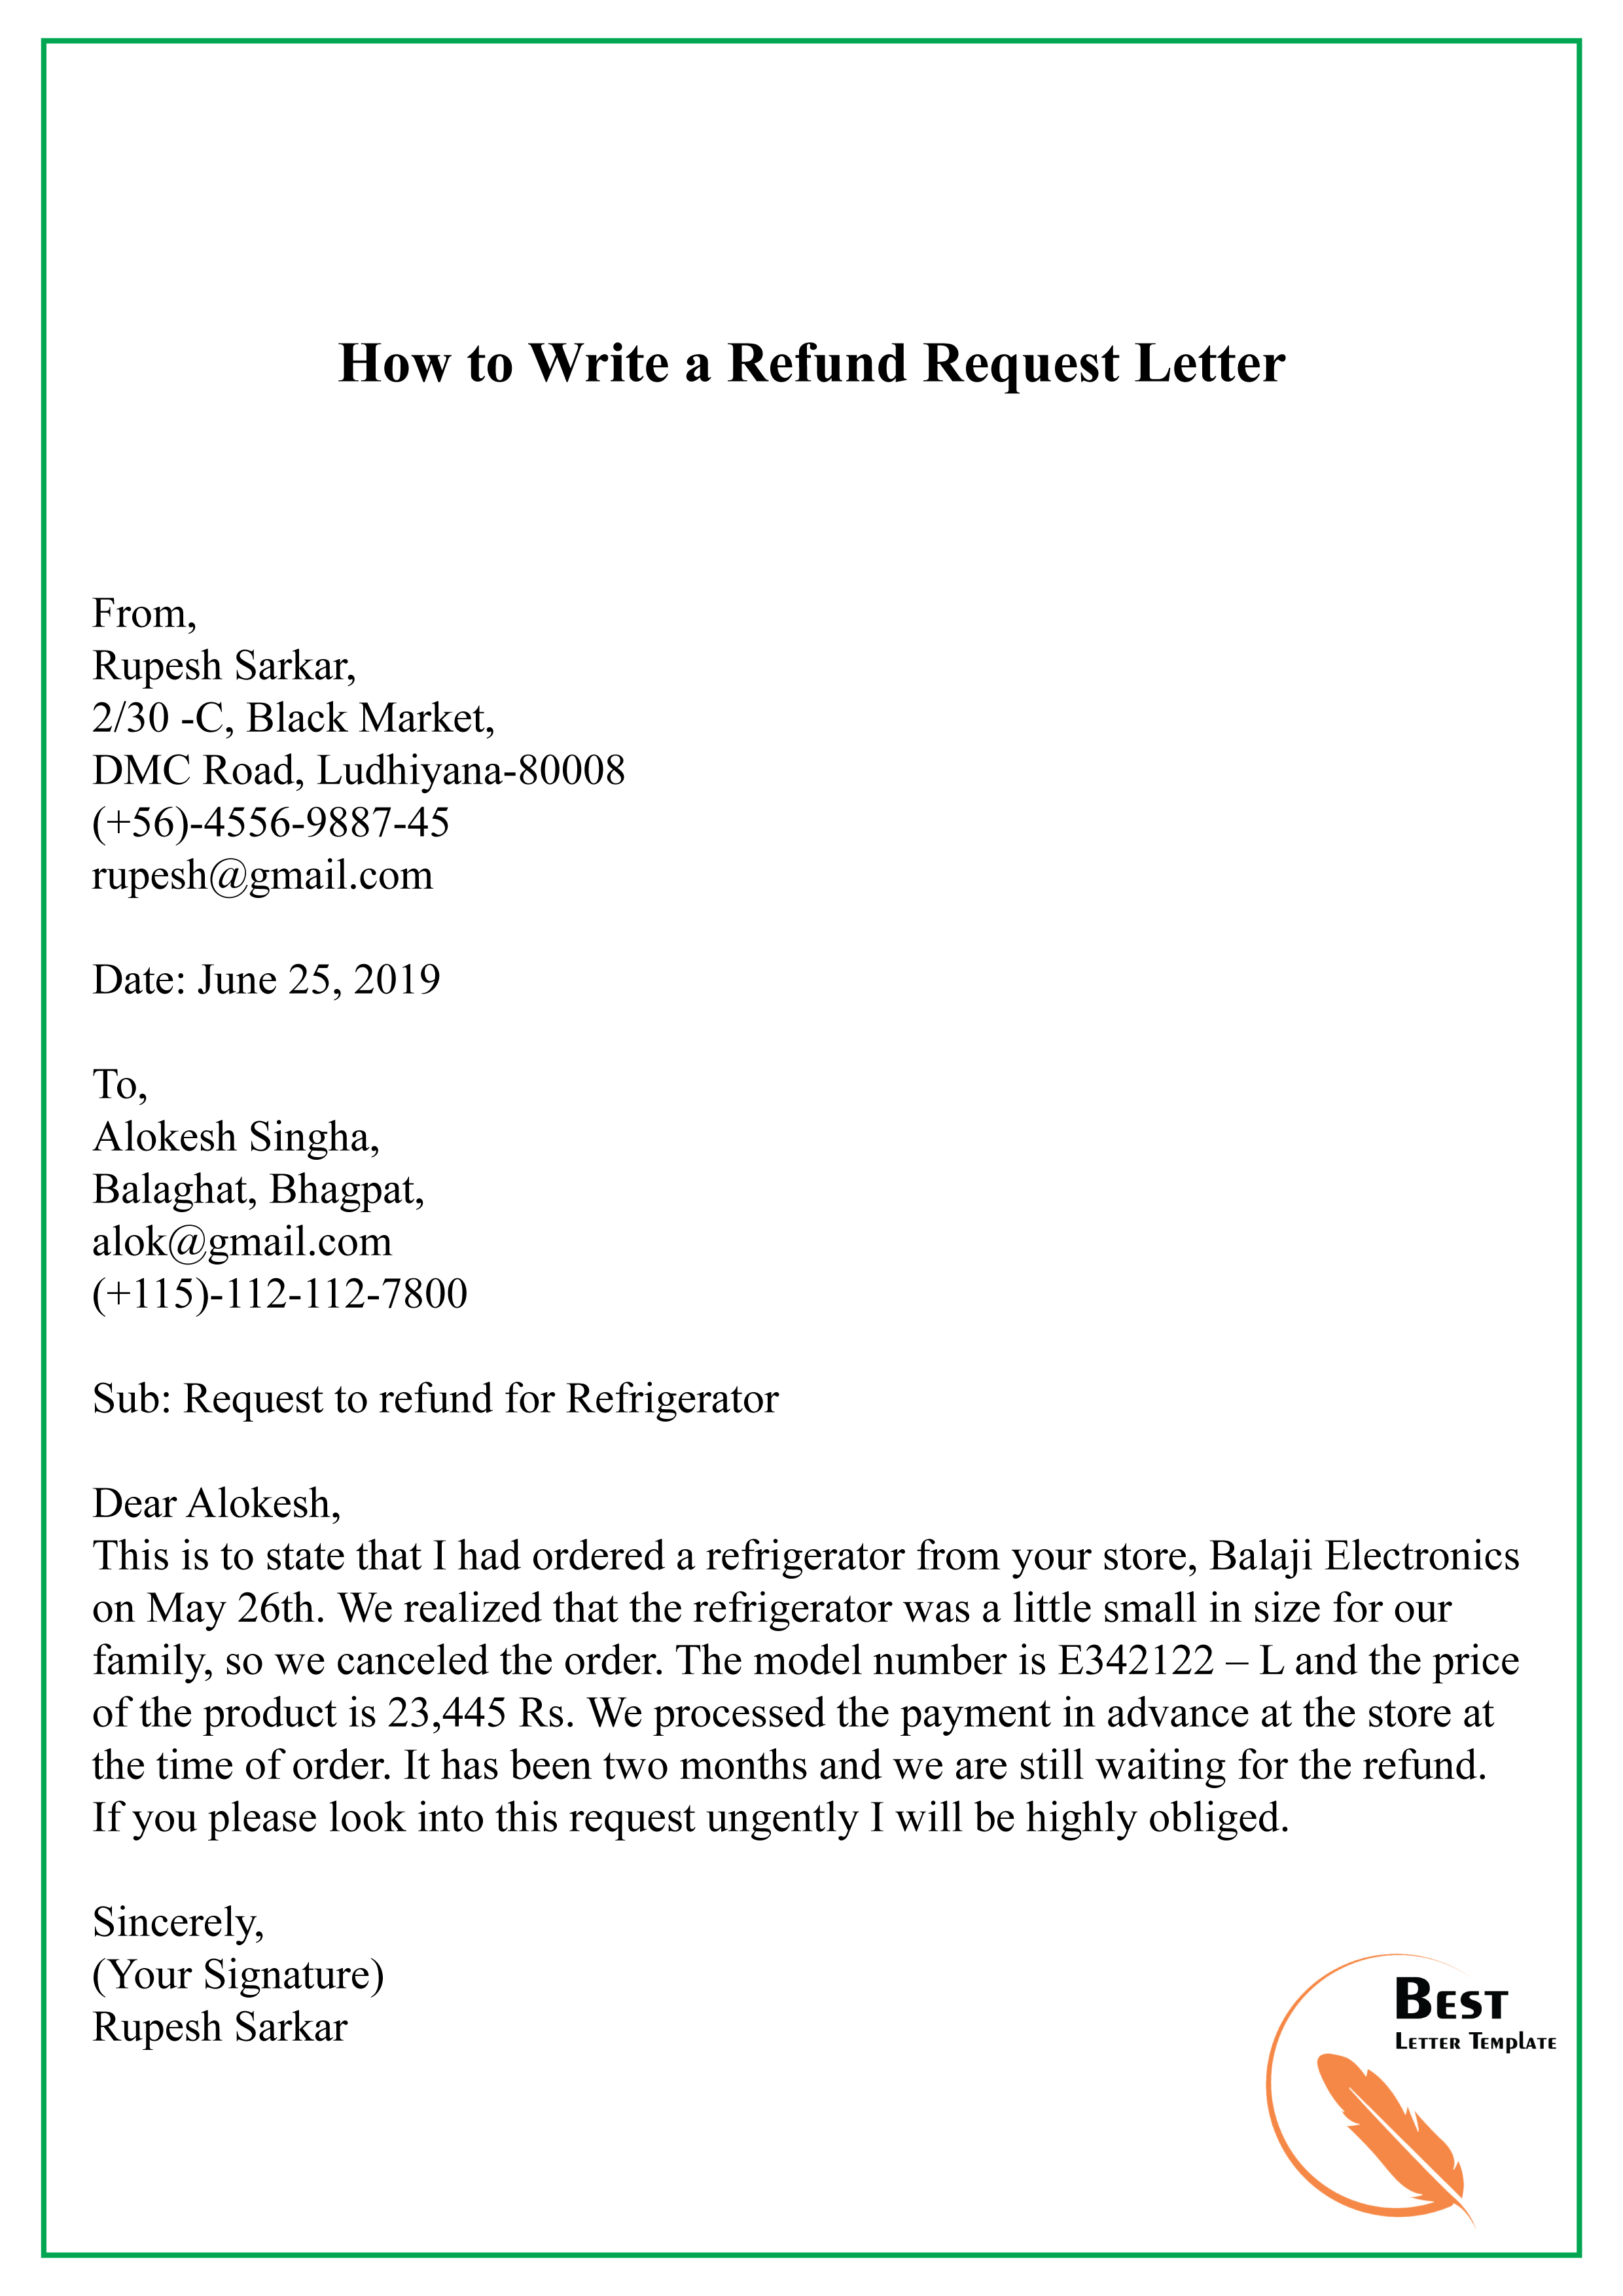 How To Write A Refund Request Letter 01